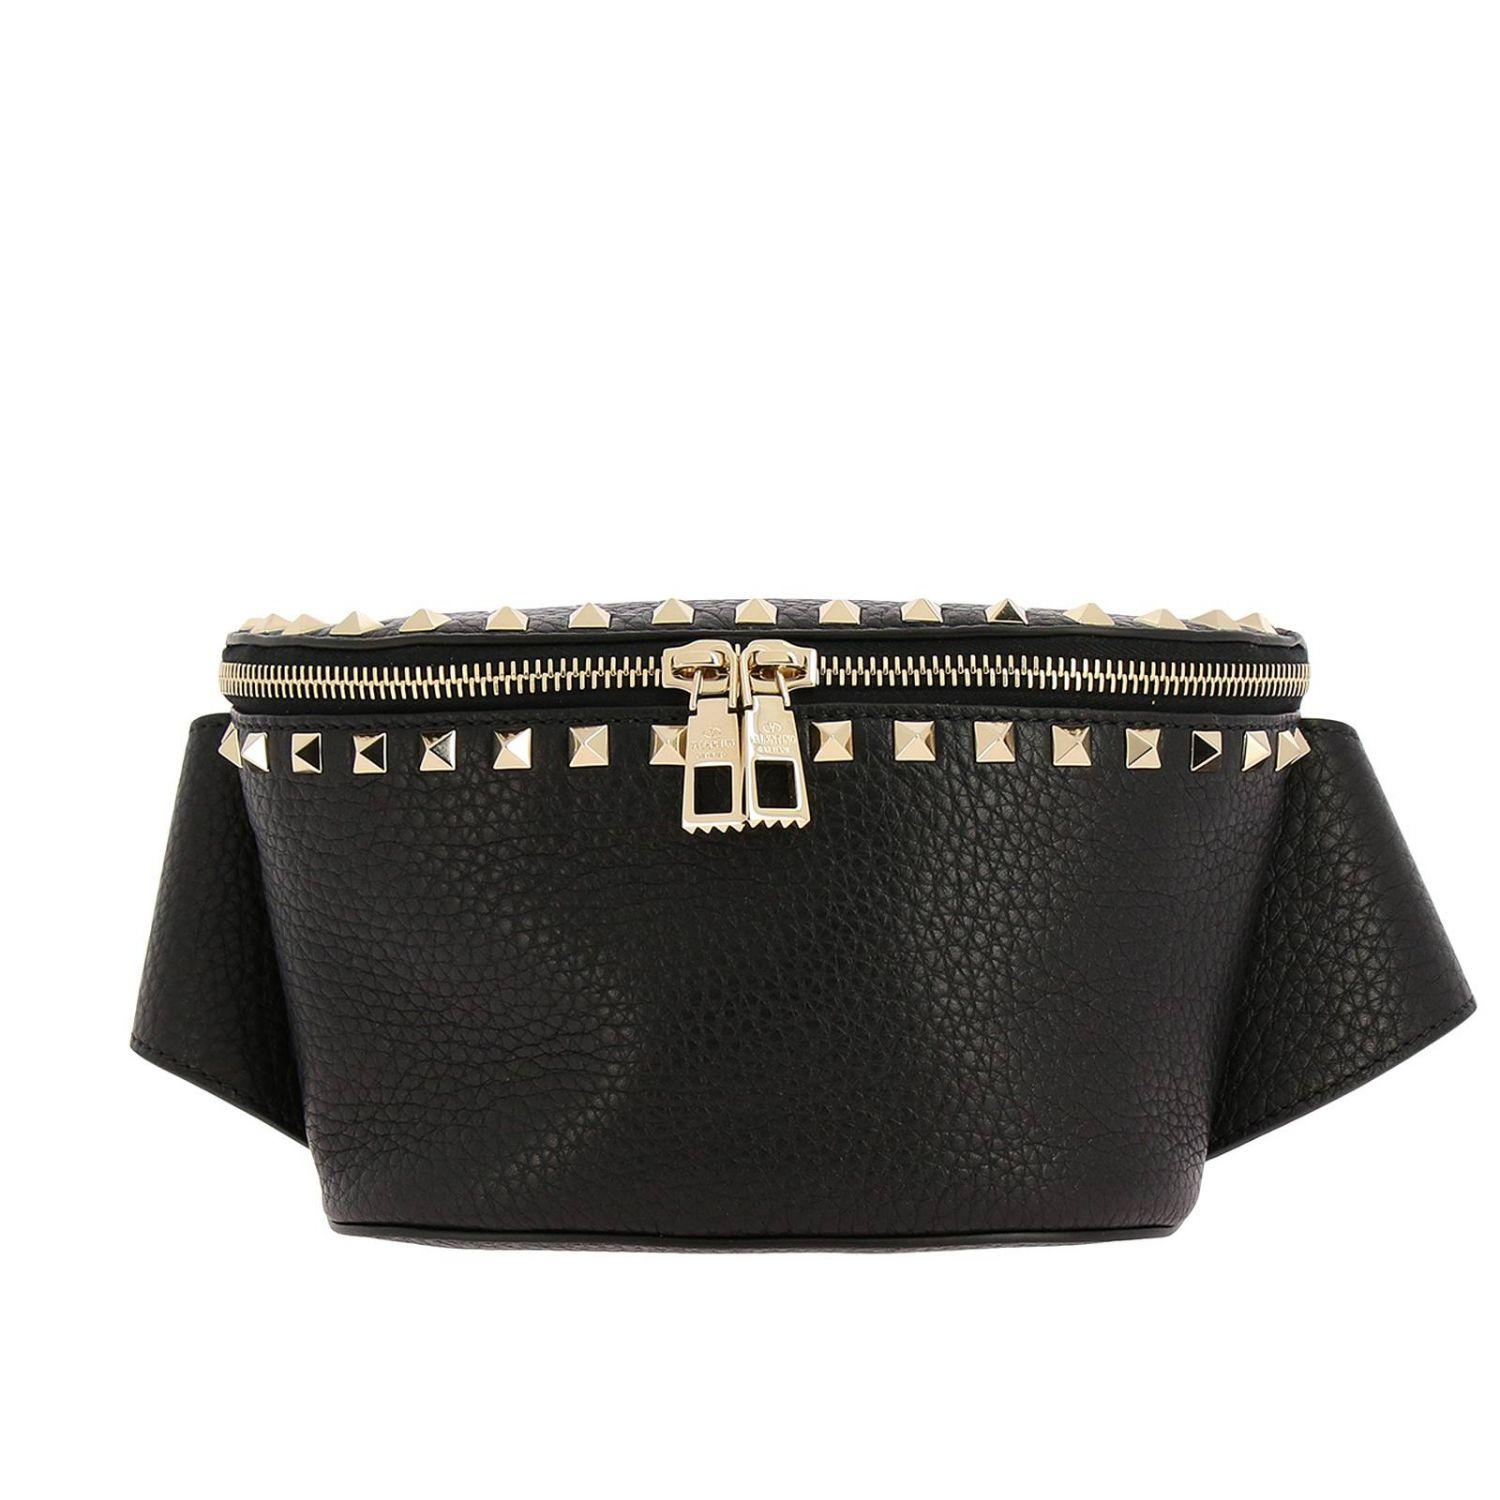 f19b2c4b4fab Lyst - Valentino Belt Bag Shoulder Bag Women in Black